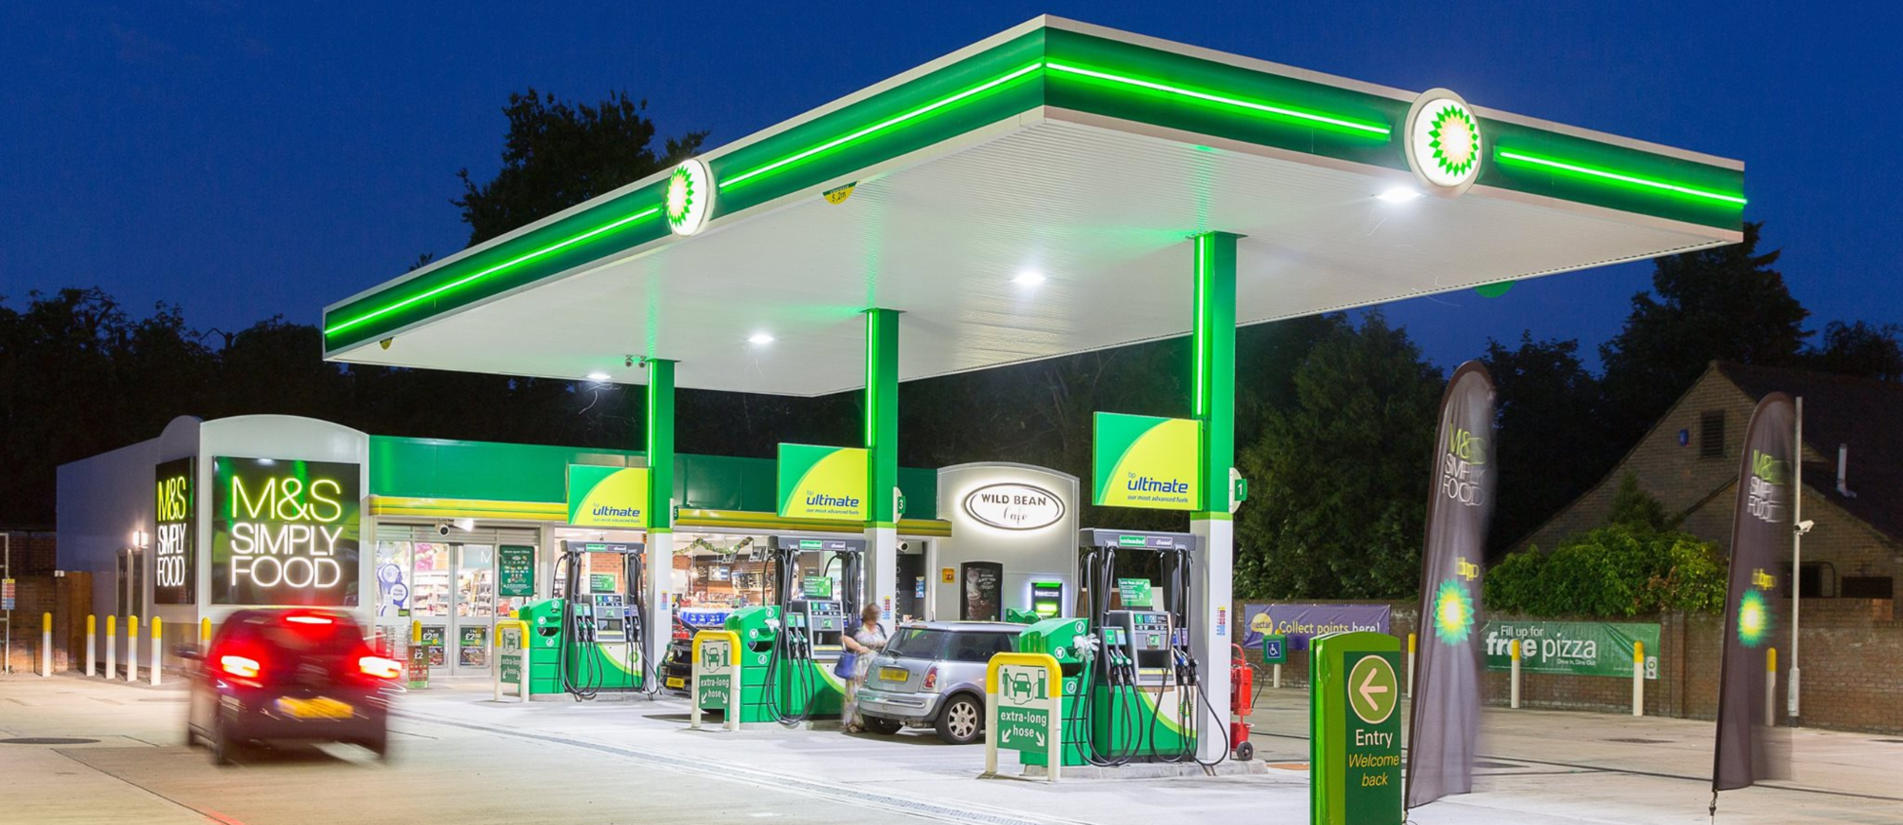 Electrical Contractors Surrey, Electricians Surrey, Petrol Station